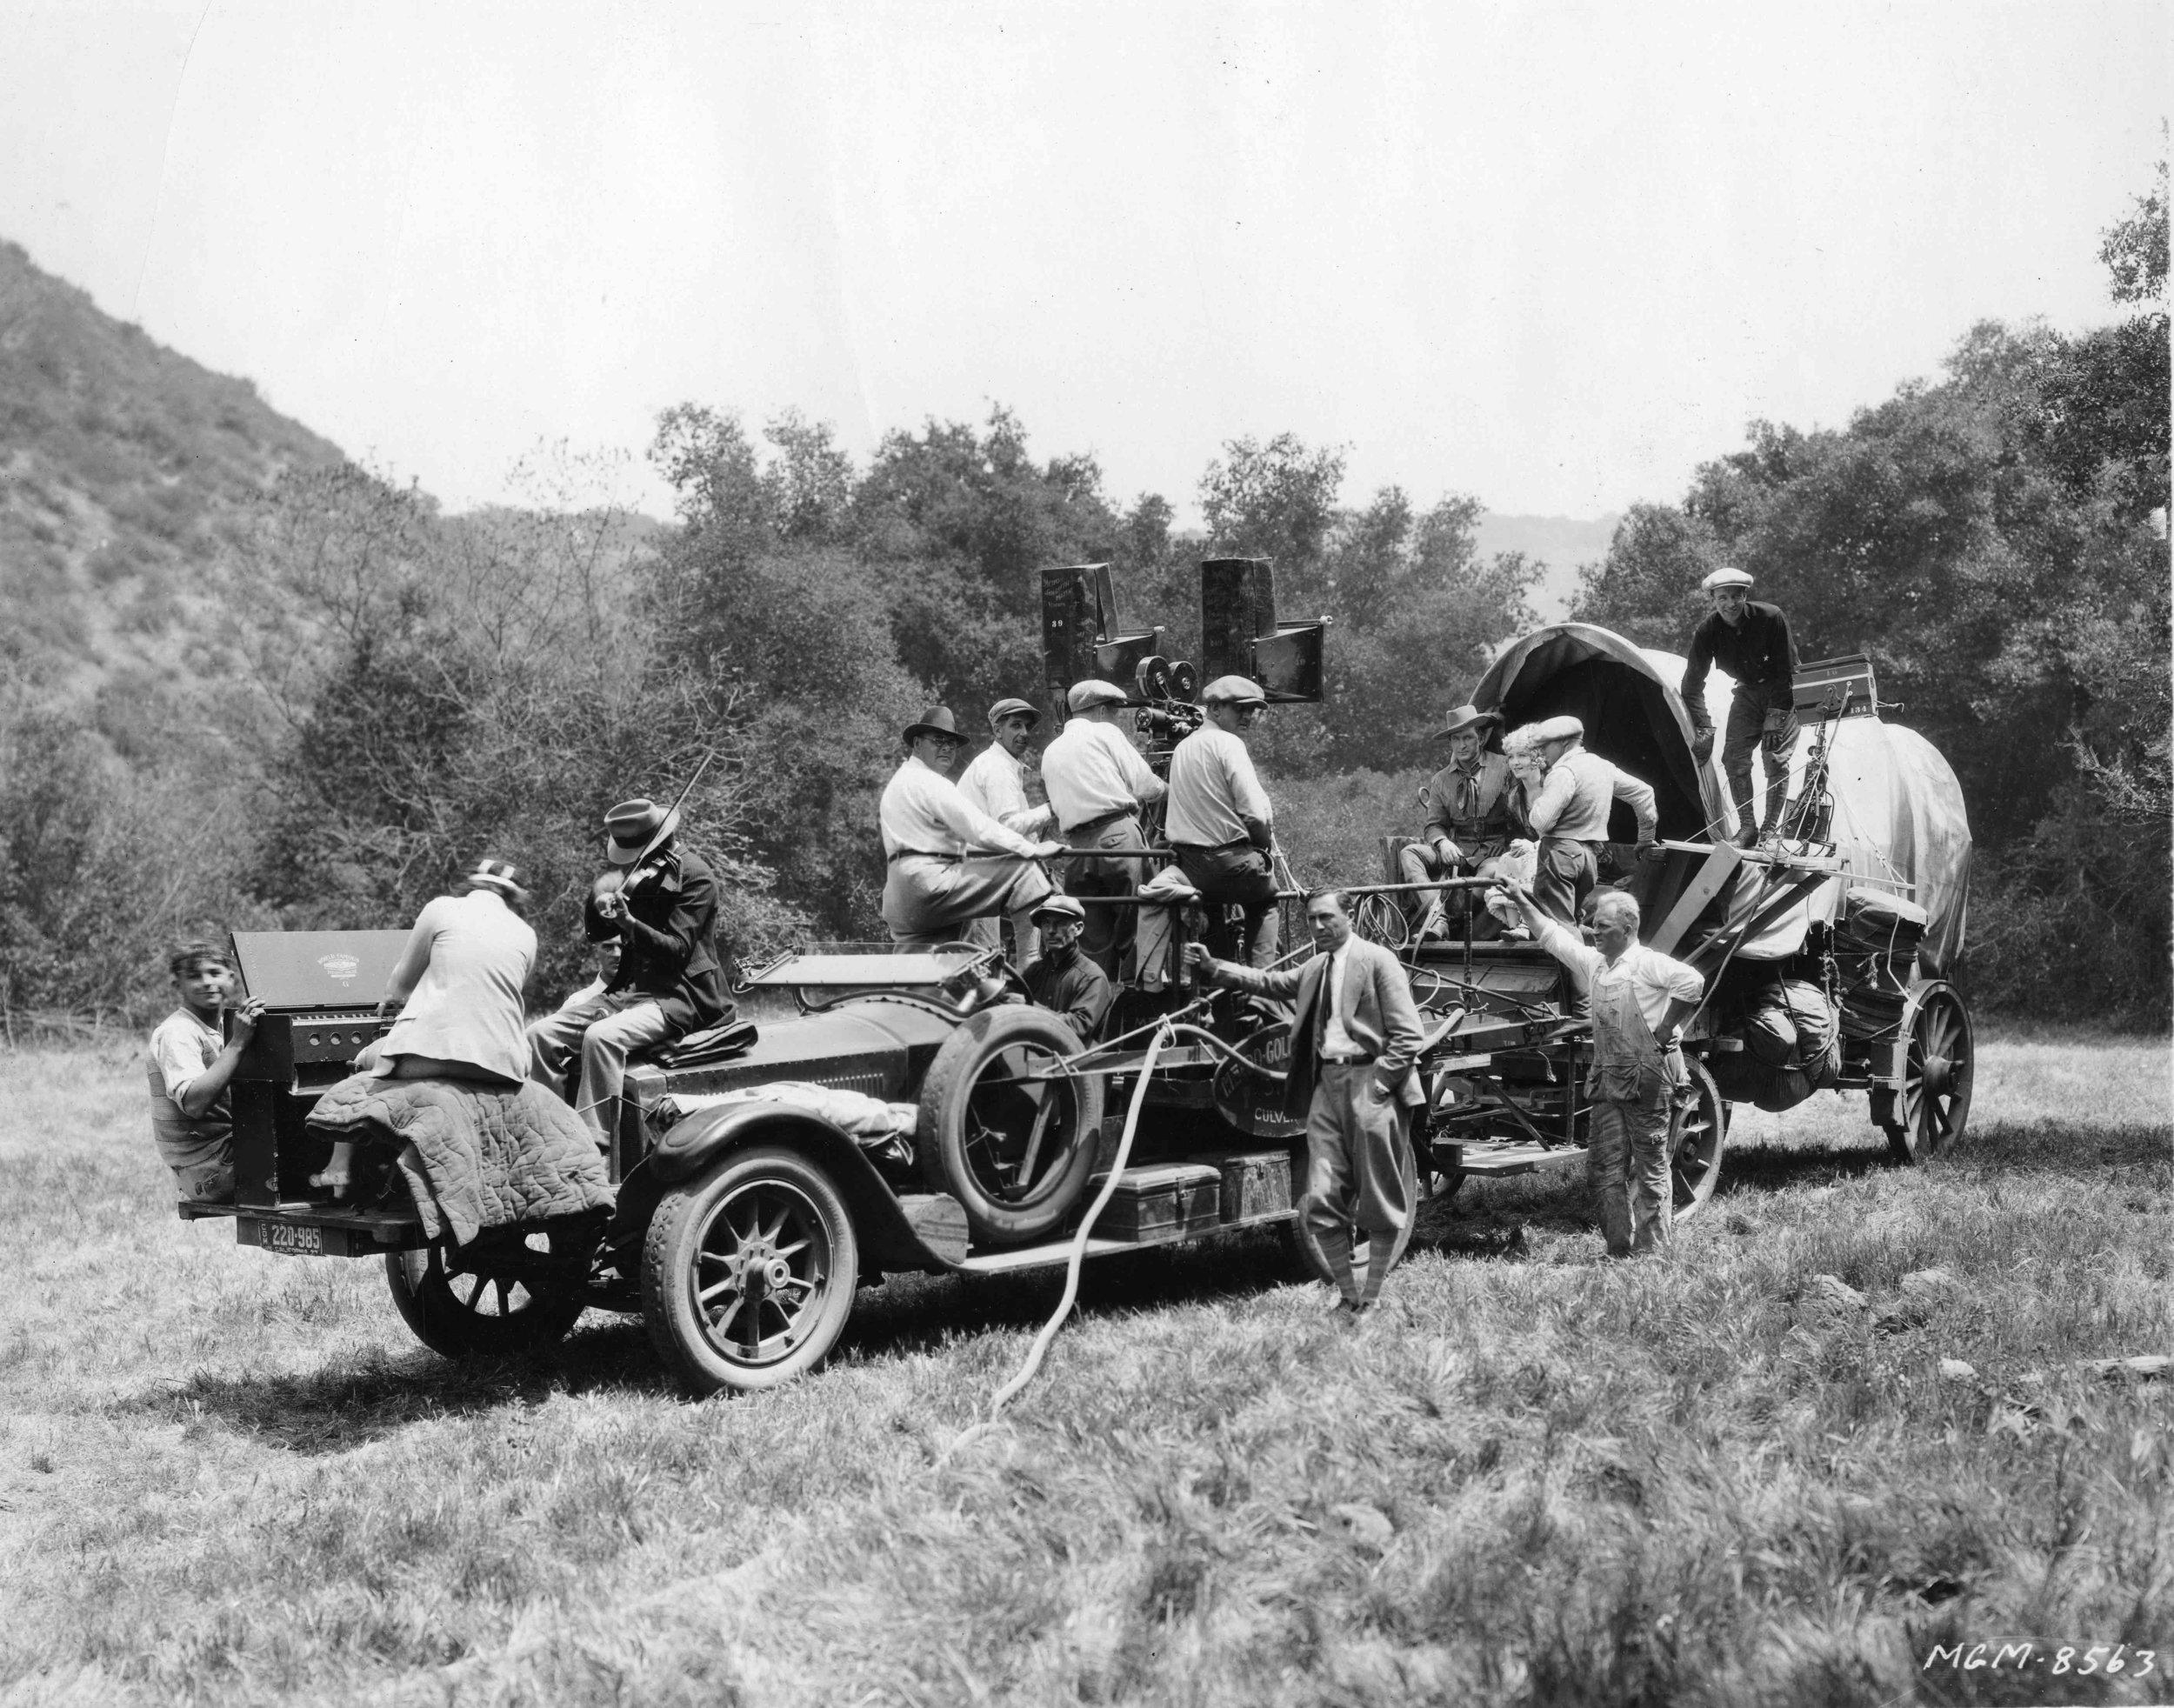 Fig03_04 Behind the scenes - locations- Lasky Ranch - MGM 1927 'The Frontiersman' with Tim McCoy, director Reginald Barker and Claire Windsor on Covered Wagon - Set musicians.jpg